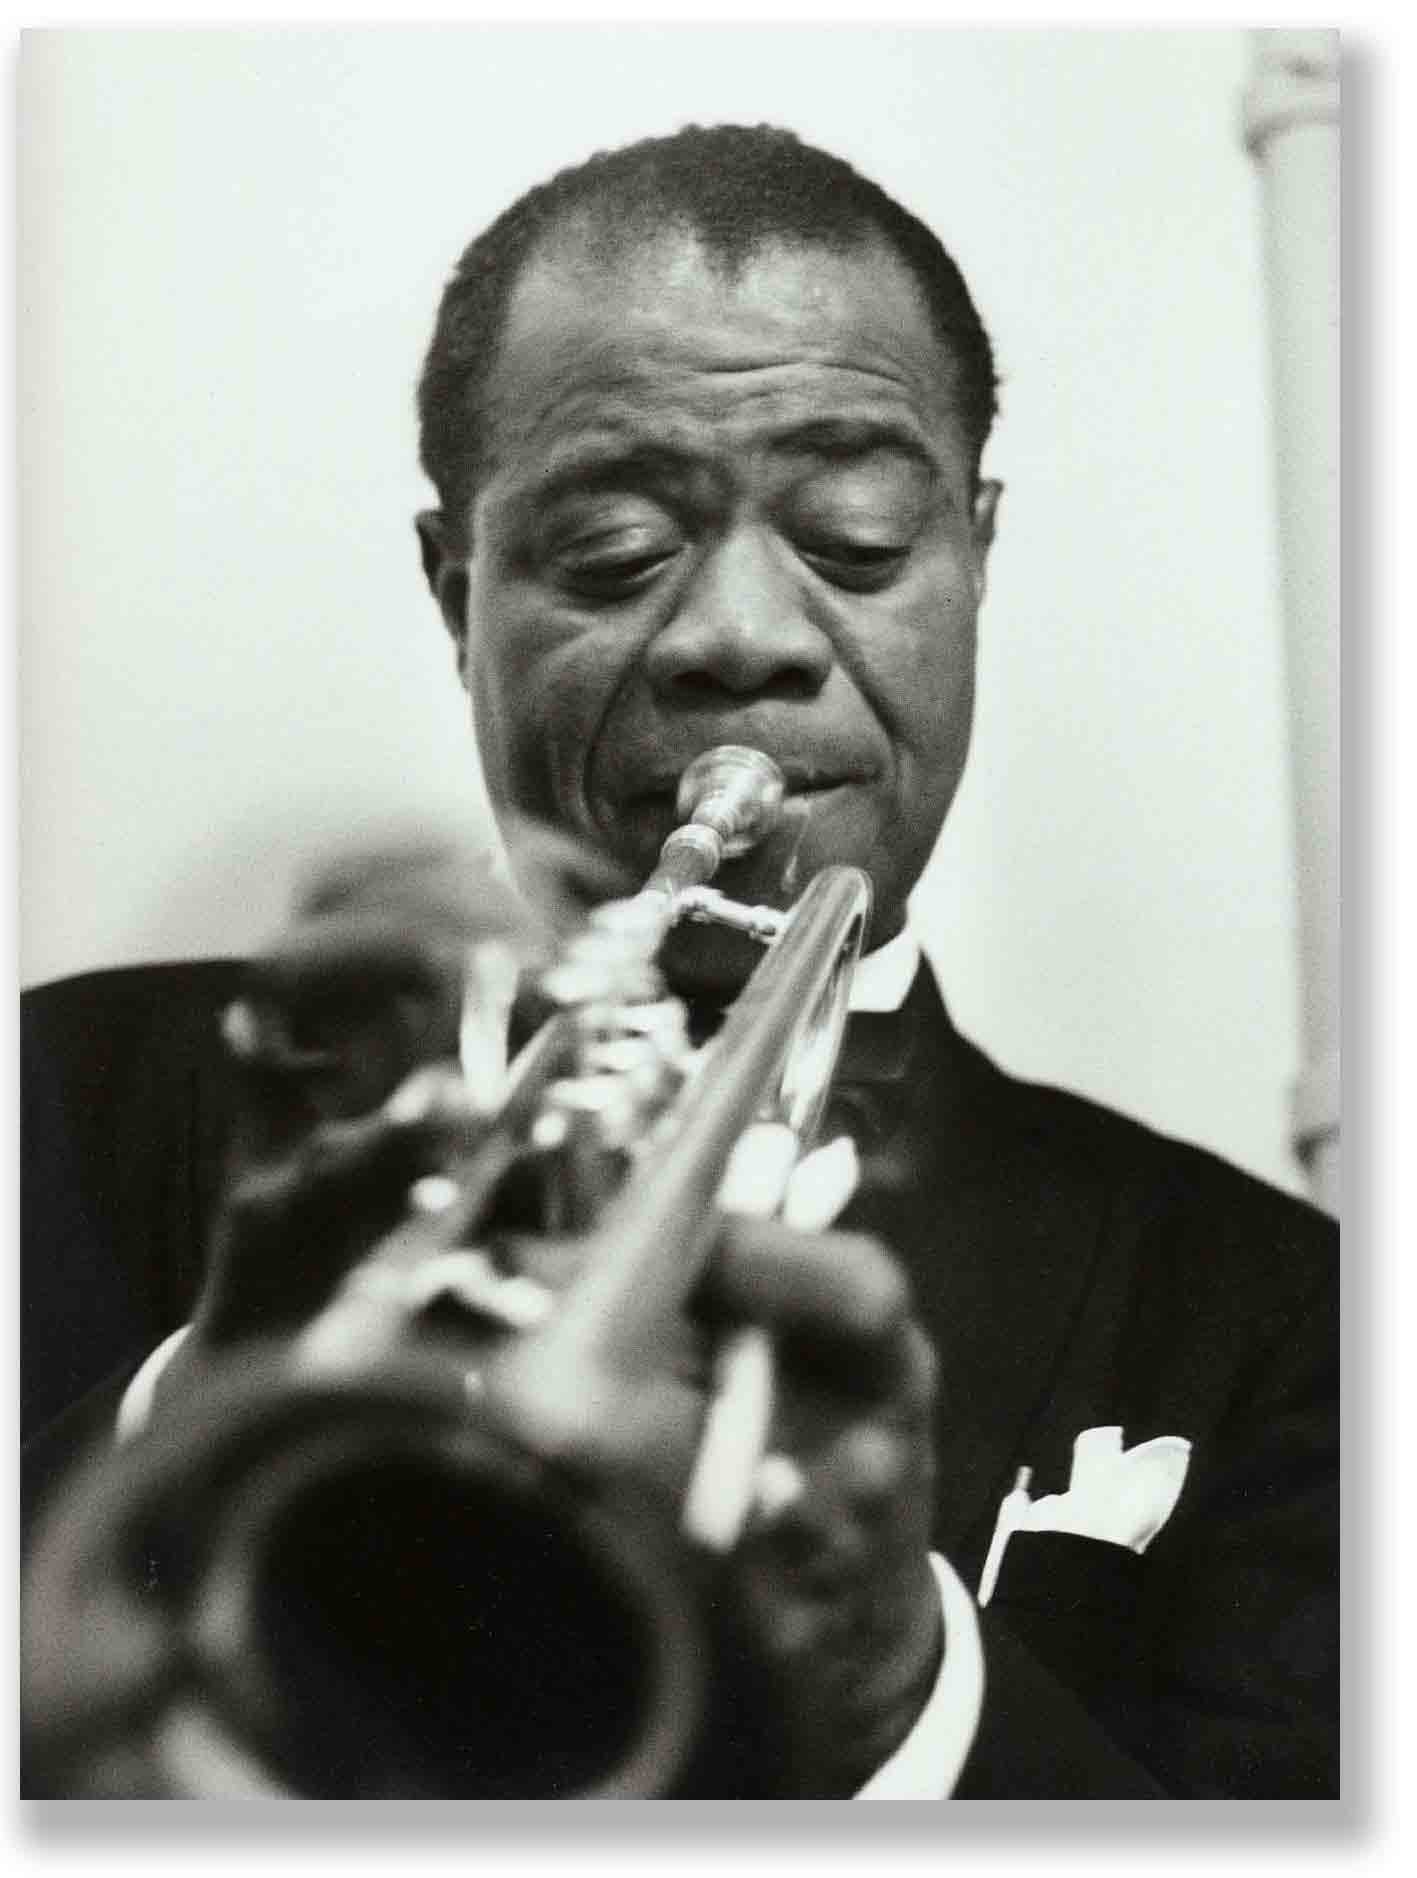 Louis Armstrong Wallpaper Free Desktop | I HD Images